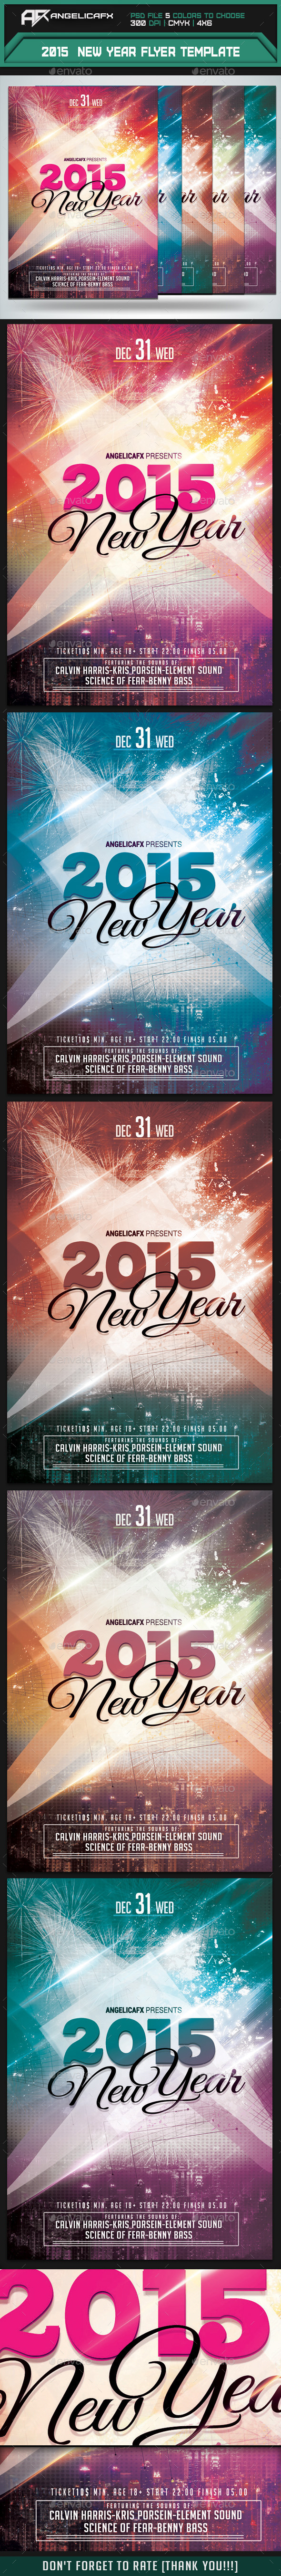 GraphicRiver 2015 New Year Flyer Template 9719989